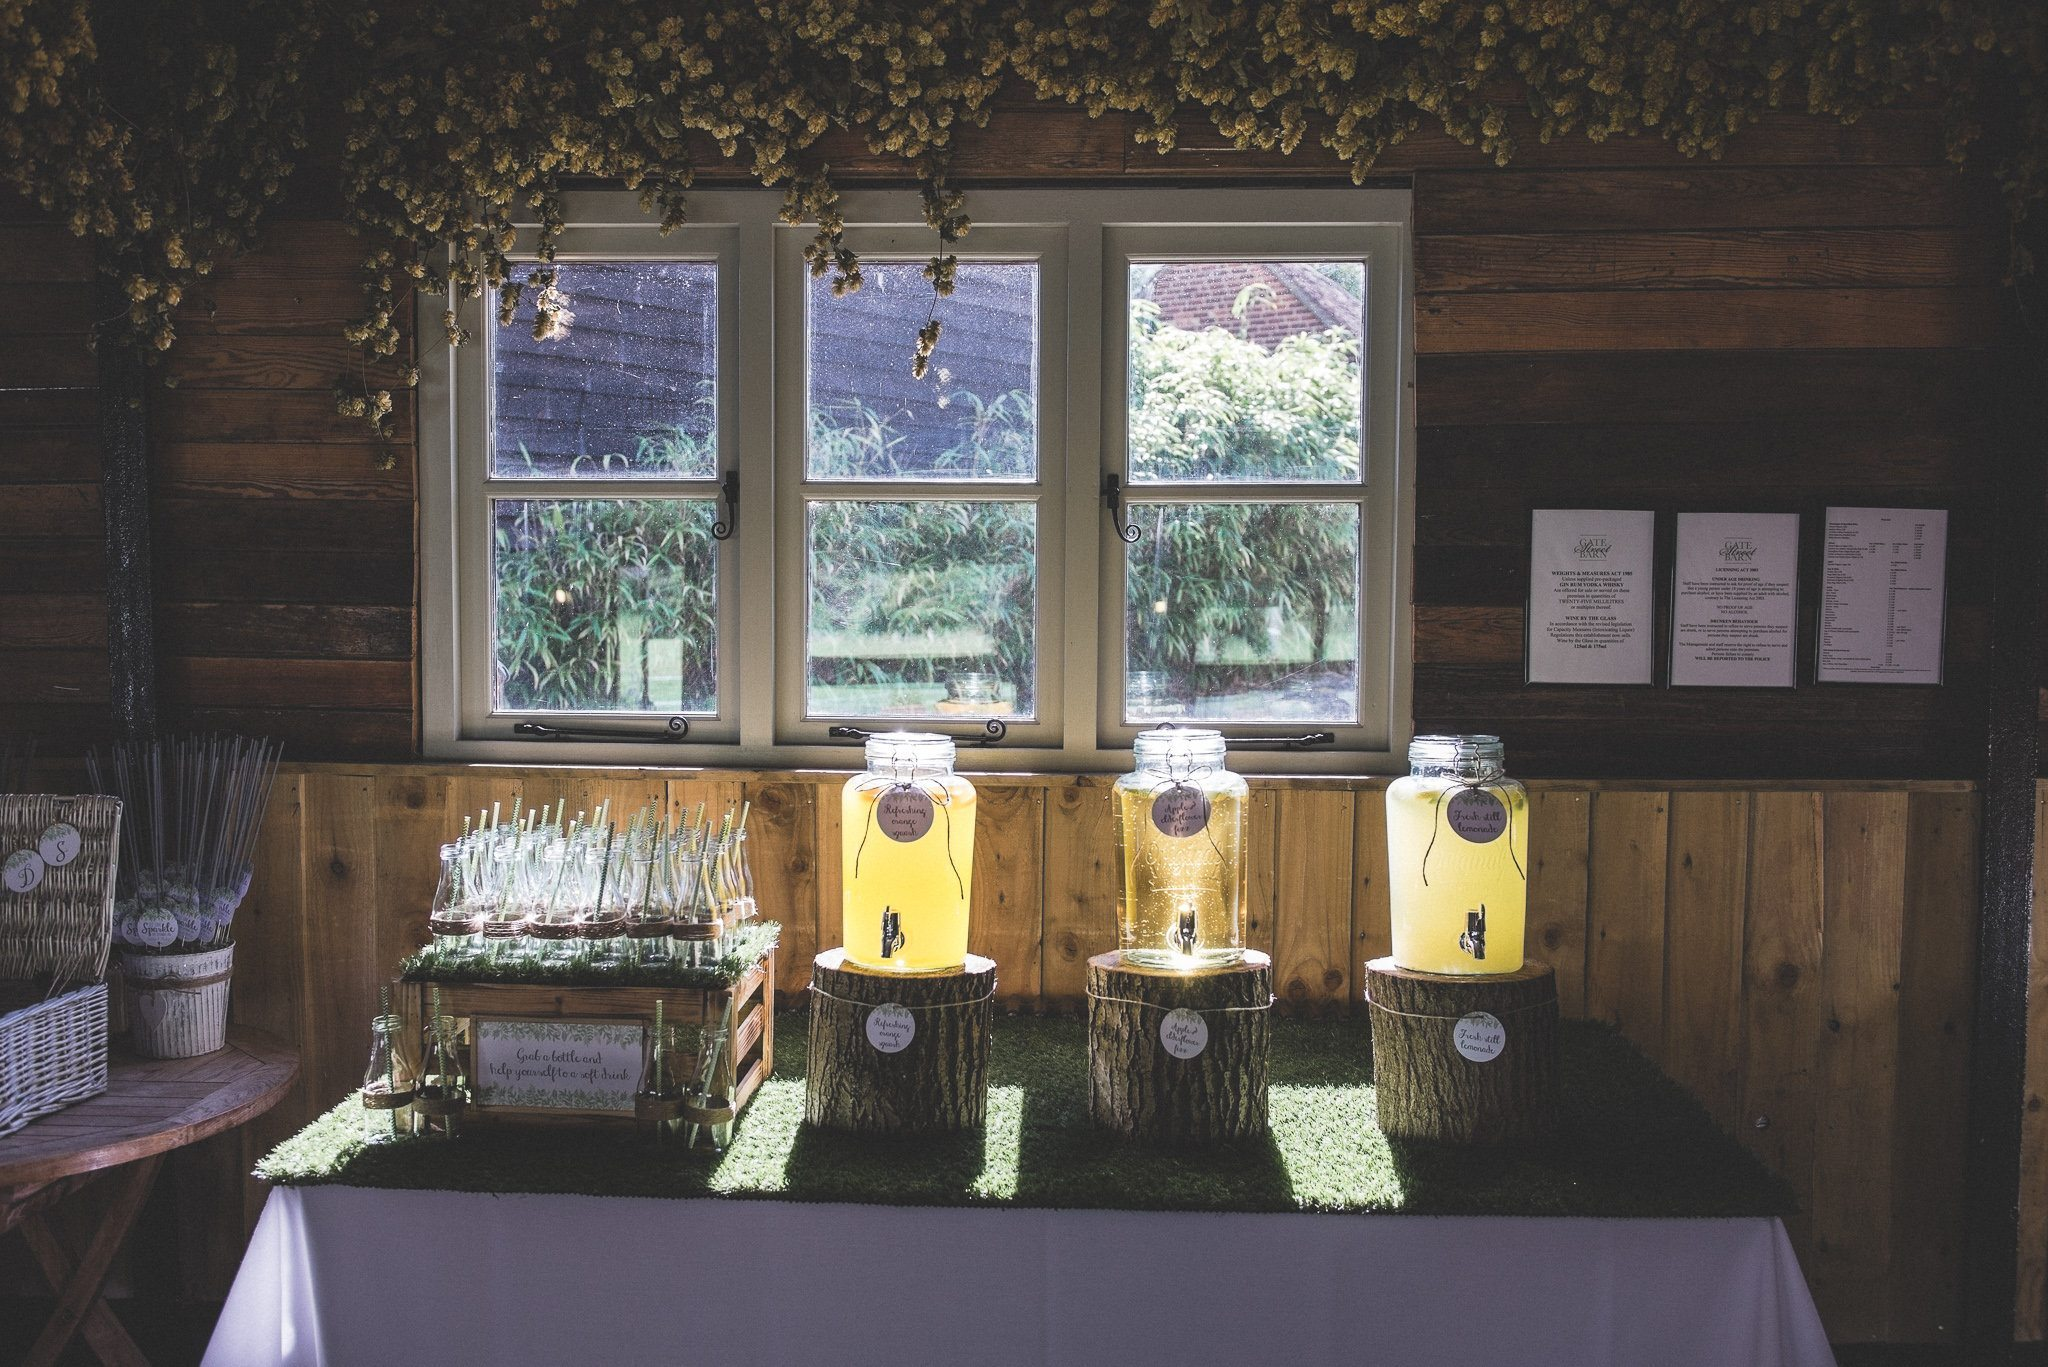 Glass drinks dispensers rest on large log slices as the sun streams through a window.